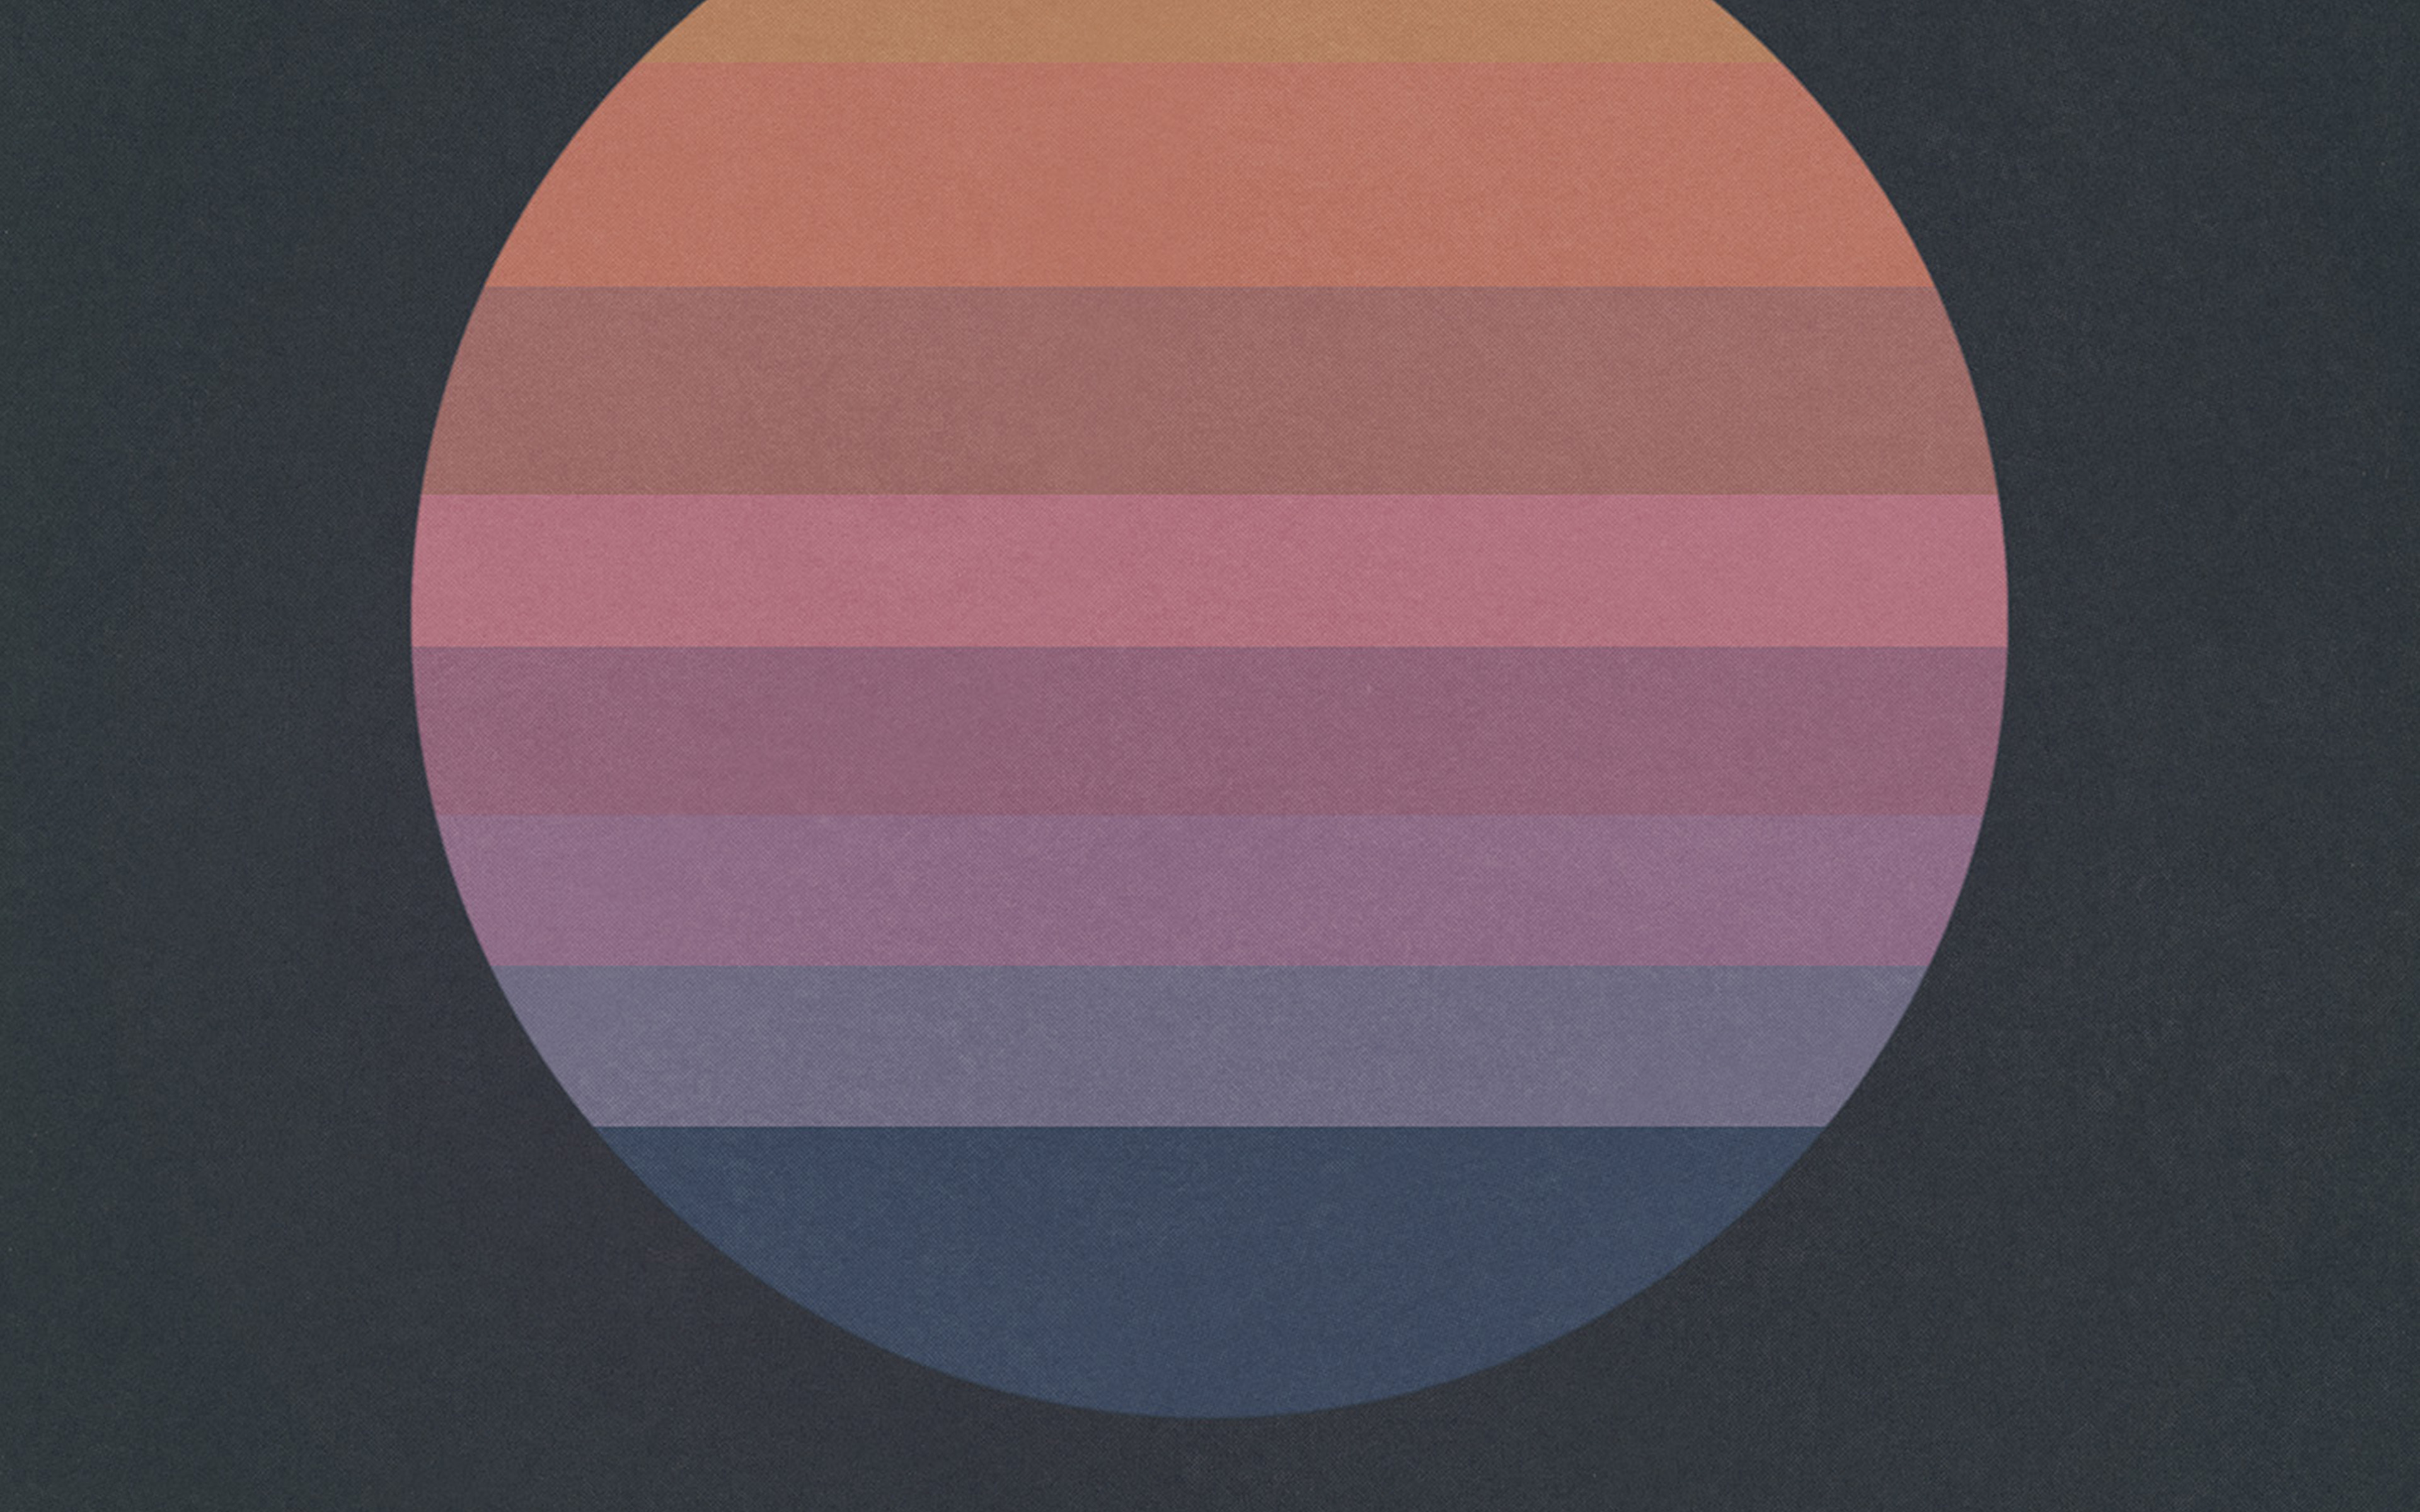 Hd Car Wallpapers For Nexus 5 Am18 Tycho Art Music Album Cover Illust Simple Papers Co